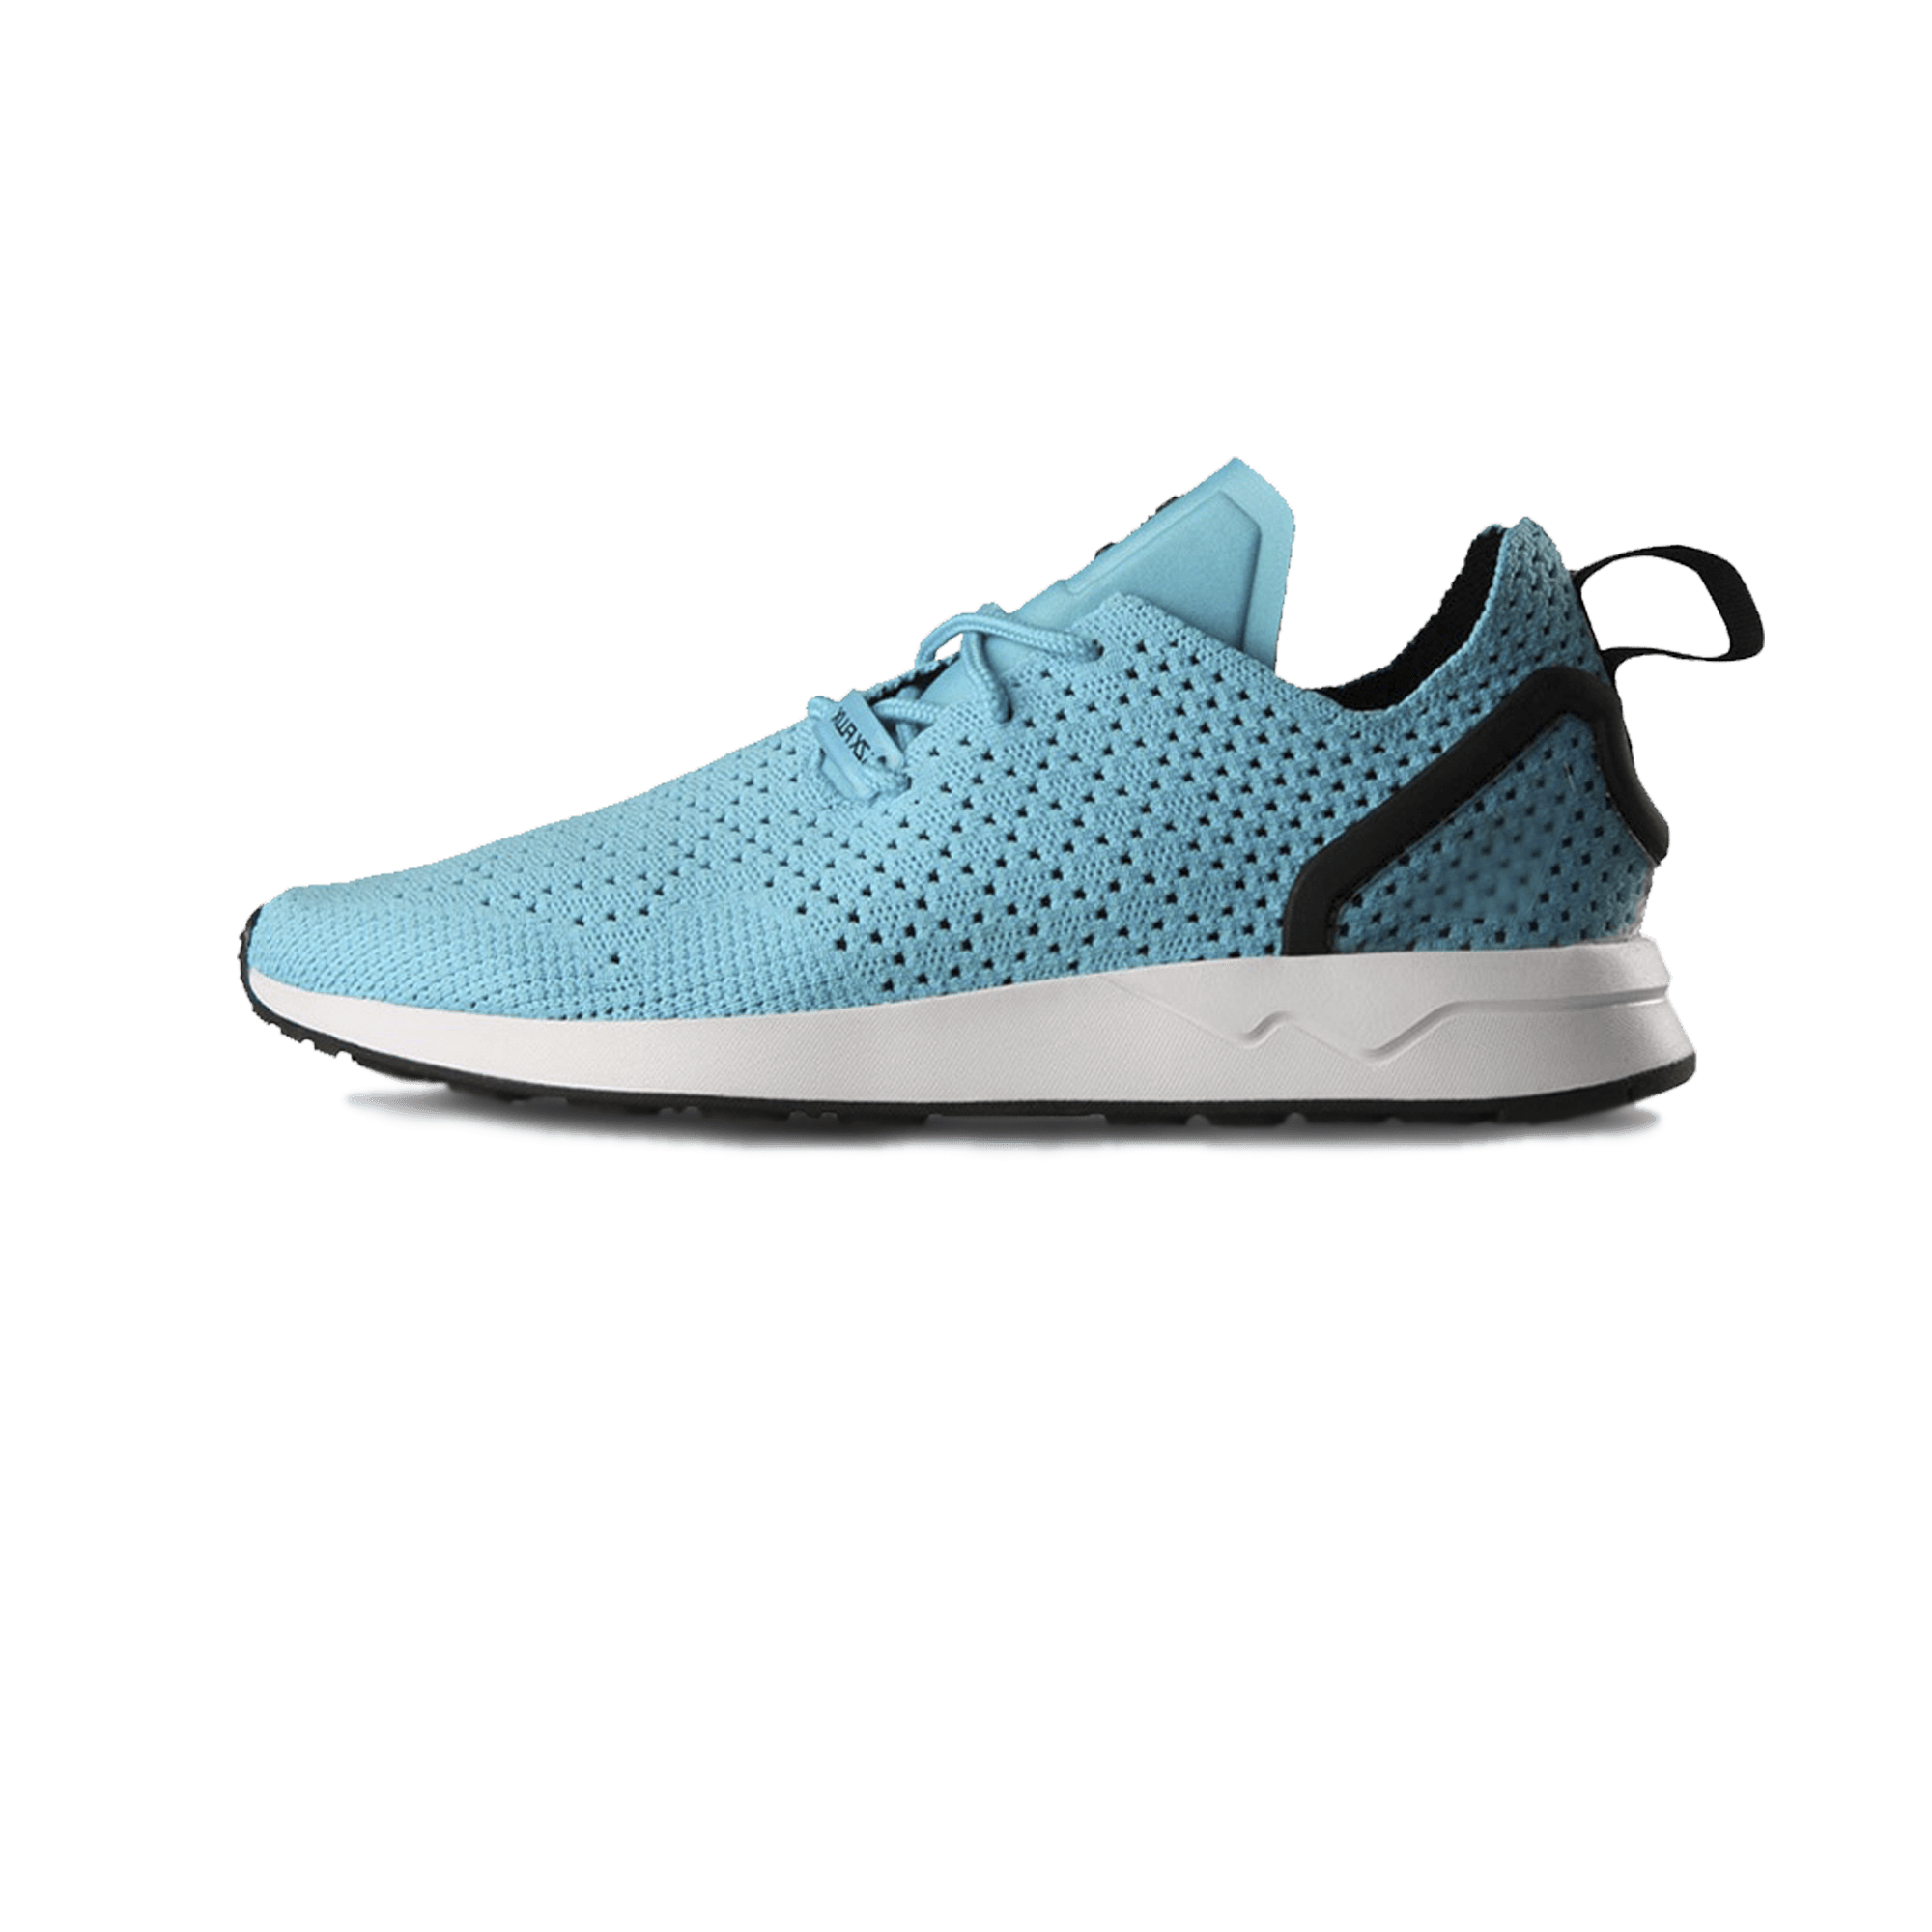 sports shoes 84d7f c43e4 adidas ZX Flux ADV Asymmetrical Primeknit blue - Men | Holypopstore.com